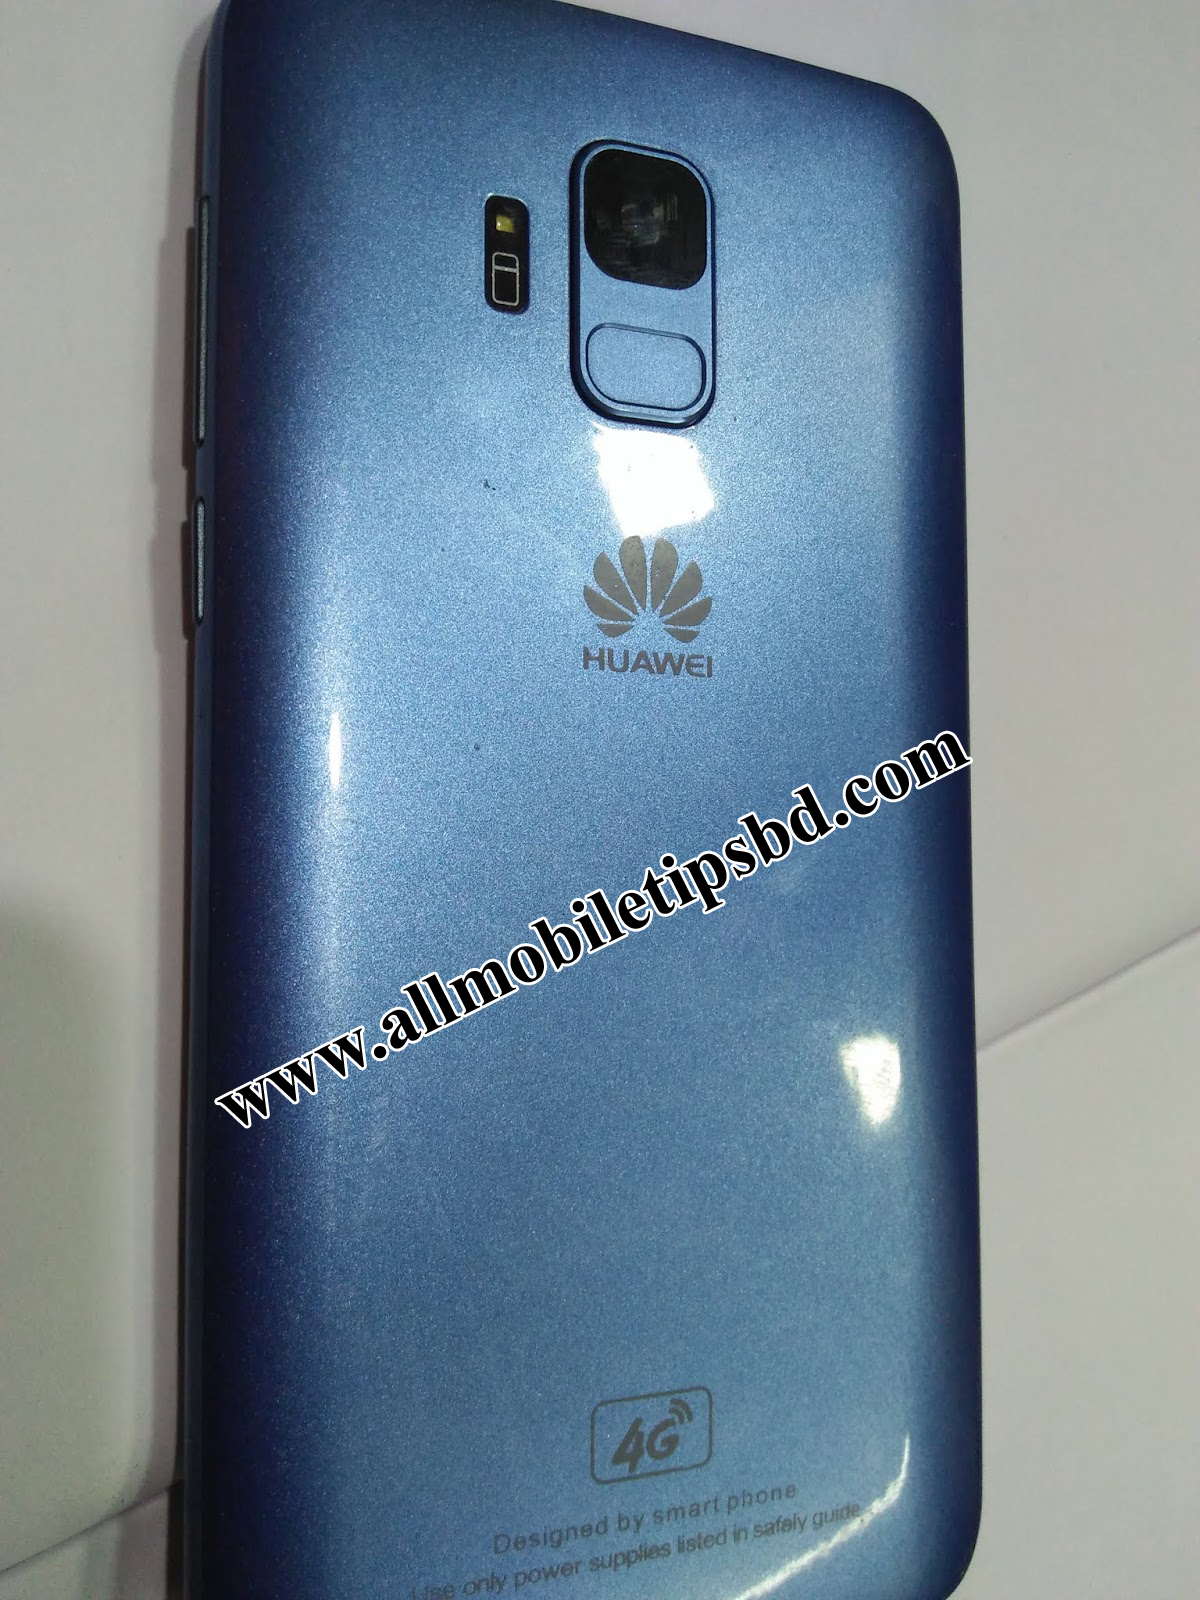 Huawei F5 Clone Flash File MT6580 7 0 Firmware Download